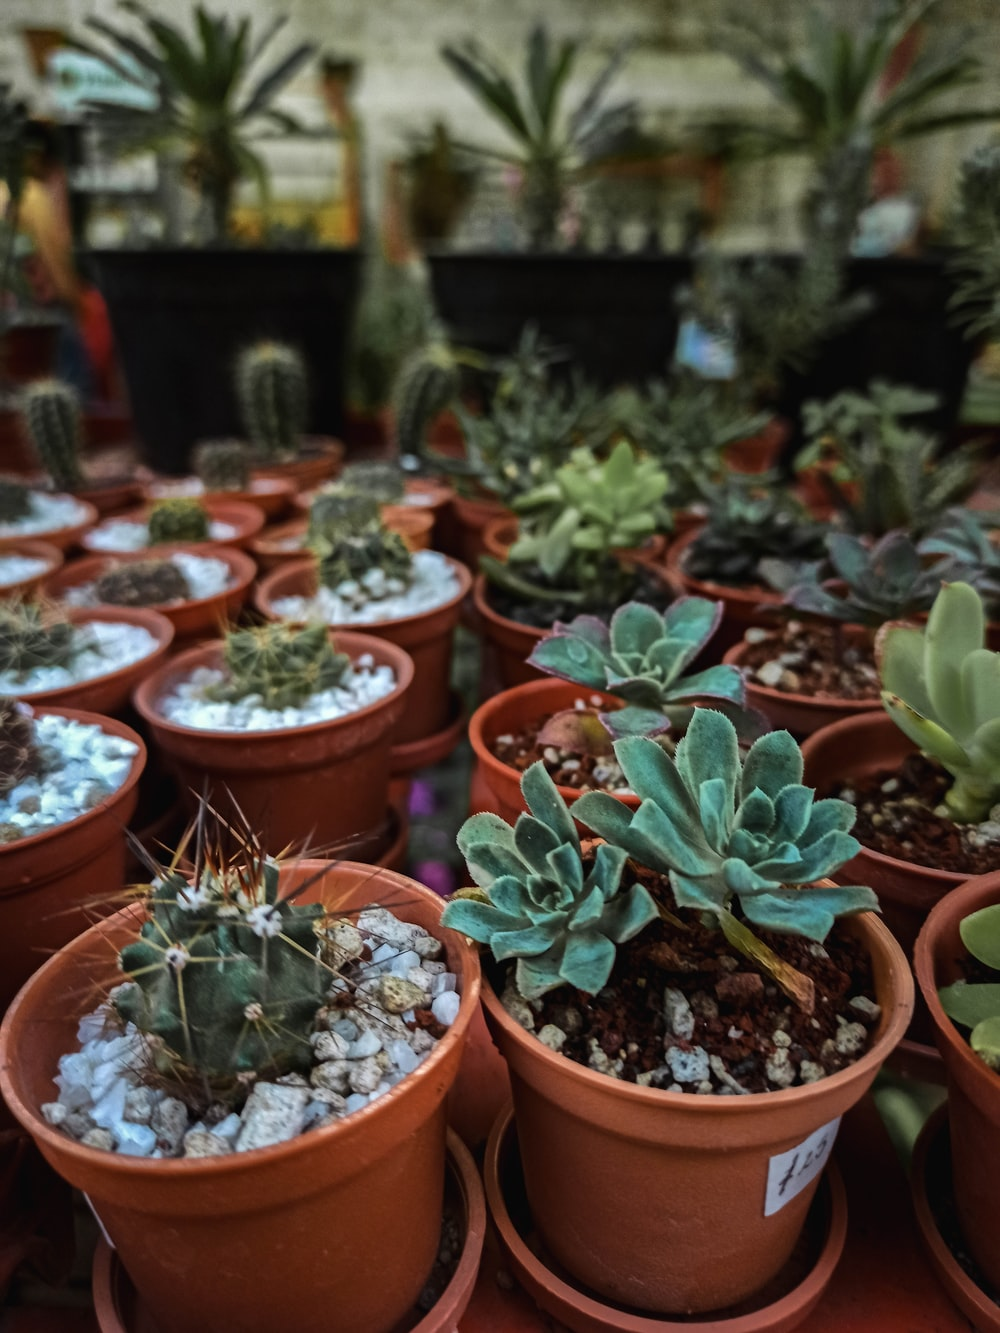 green succulent plants in brown clay pots